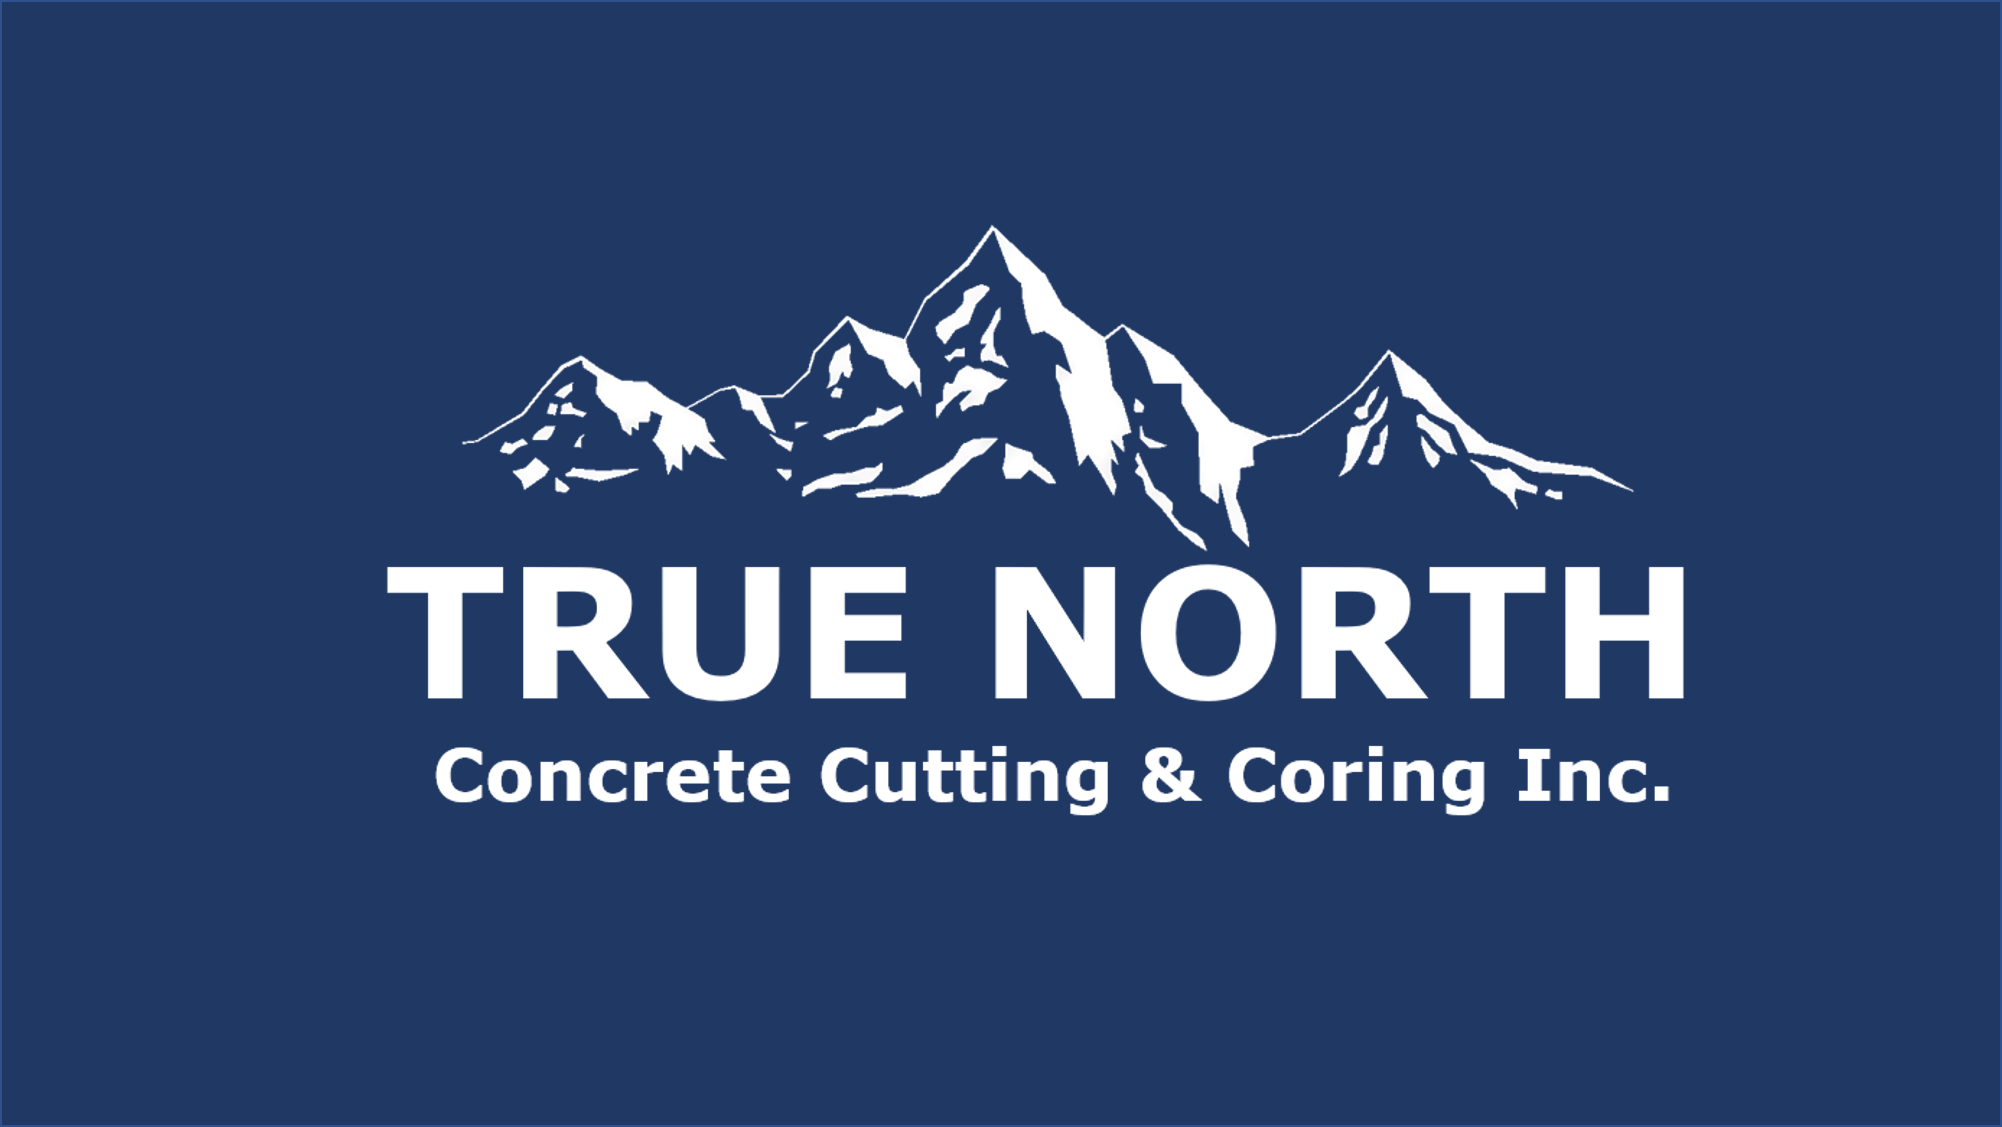 True North Concrete Cutting and Coring Inc.